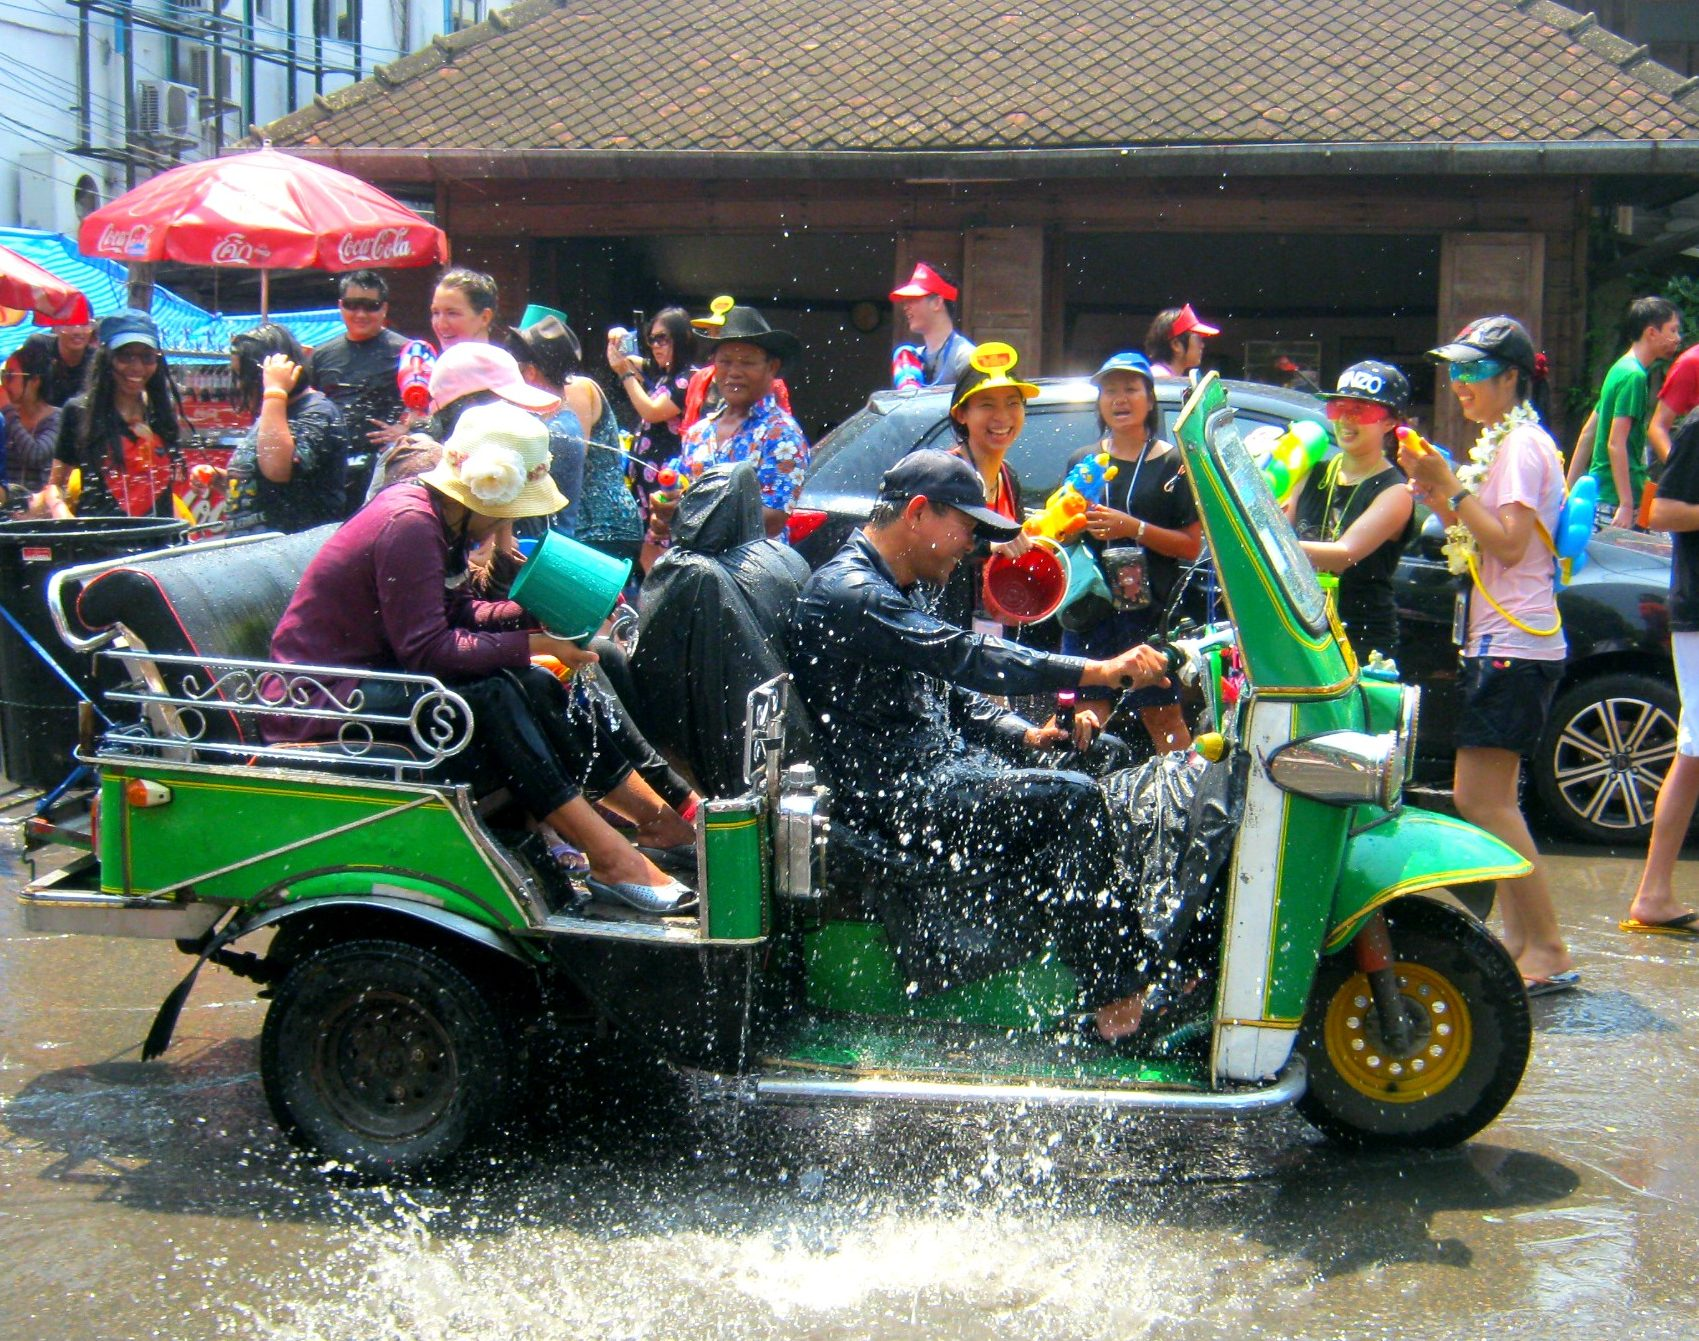 tuk-tuk in the streets during water festival in chiang mai